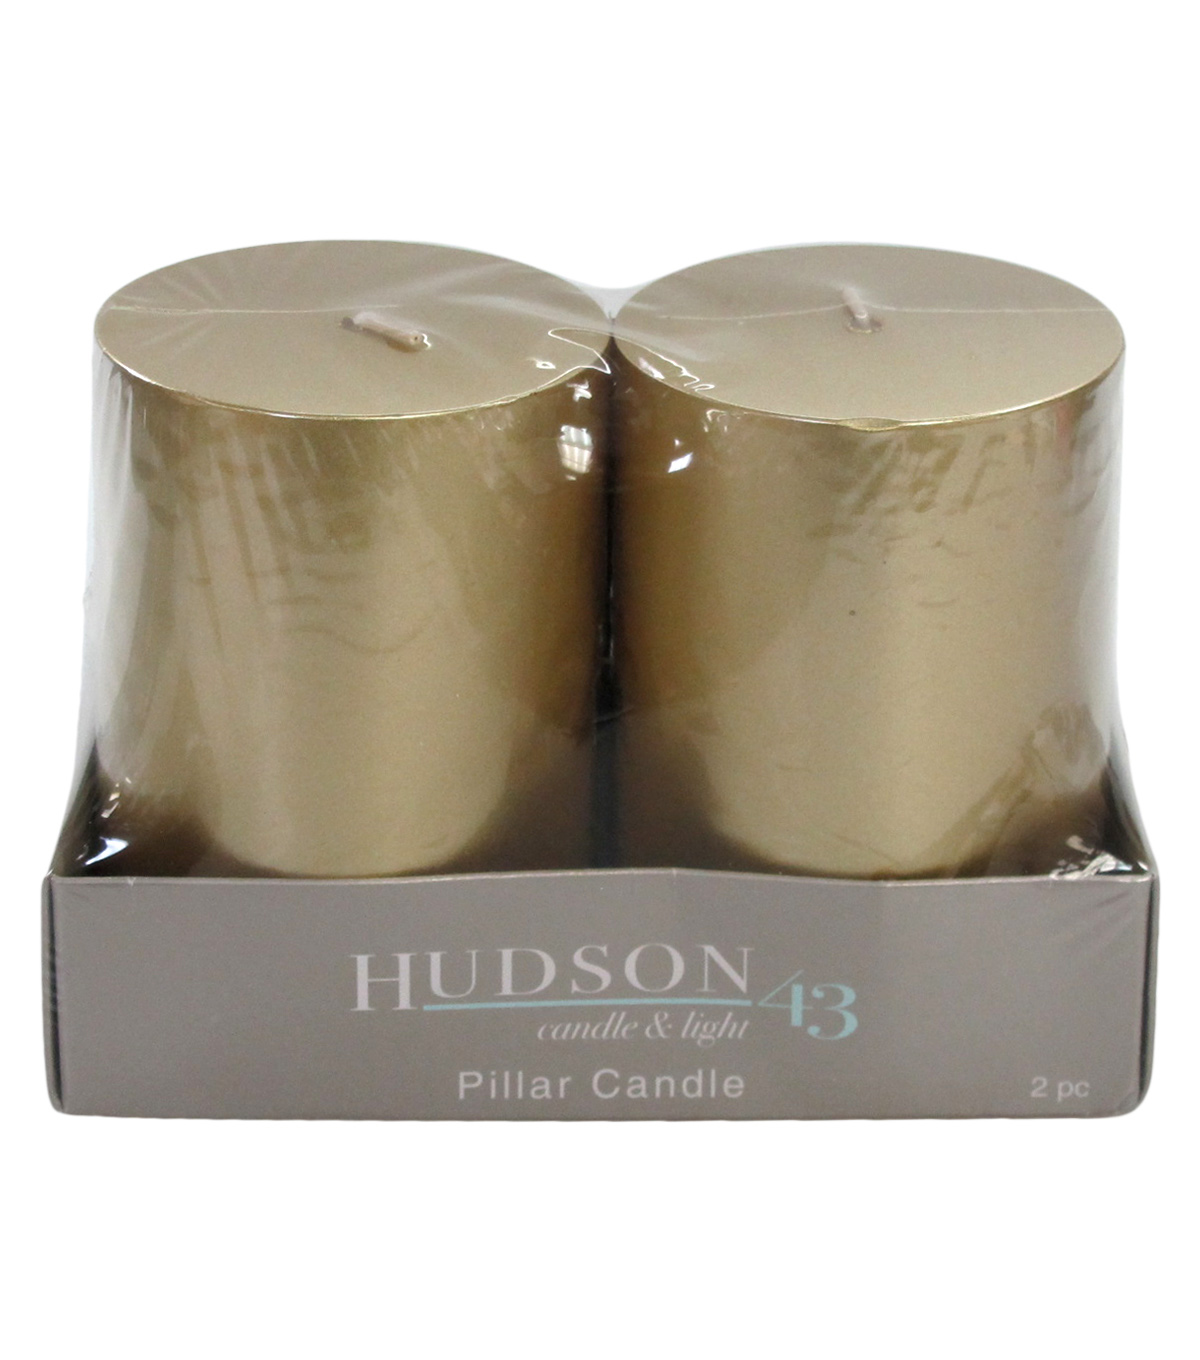 Hudson 43 Candle Light Collection 2 Pack 3x4 Gold Pillar